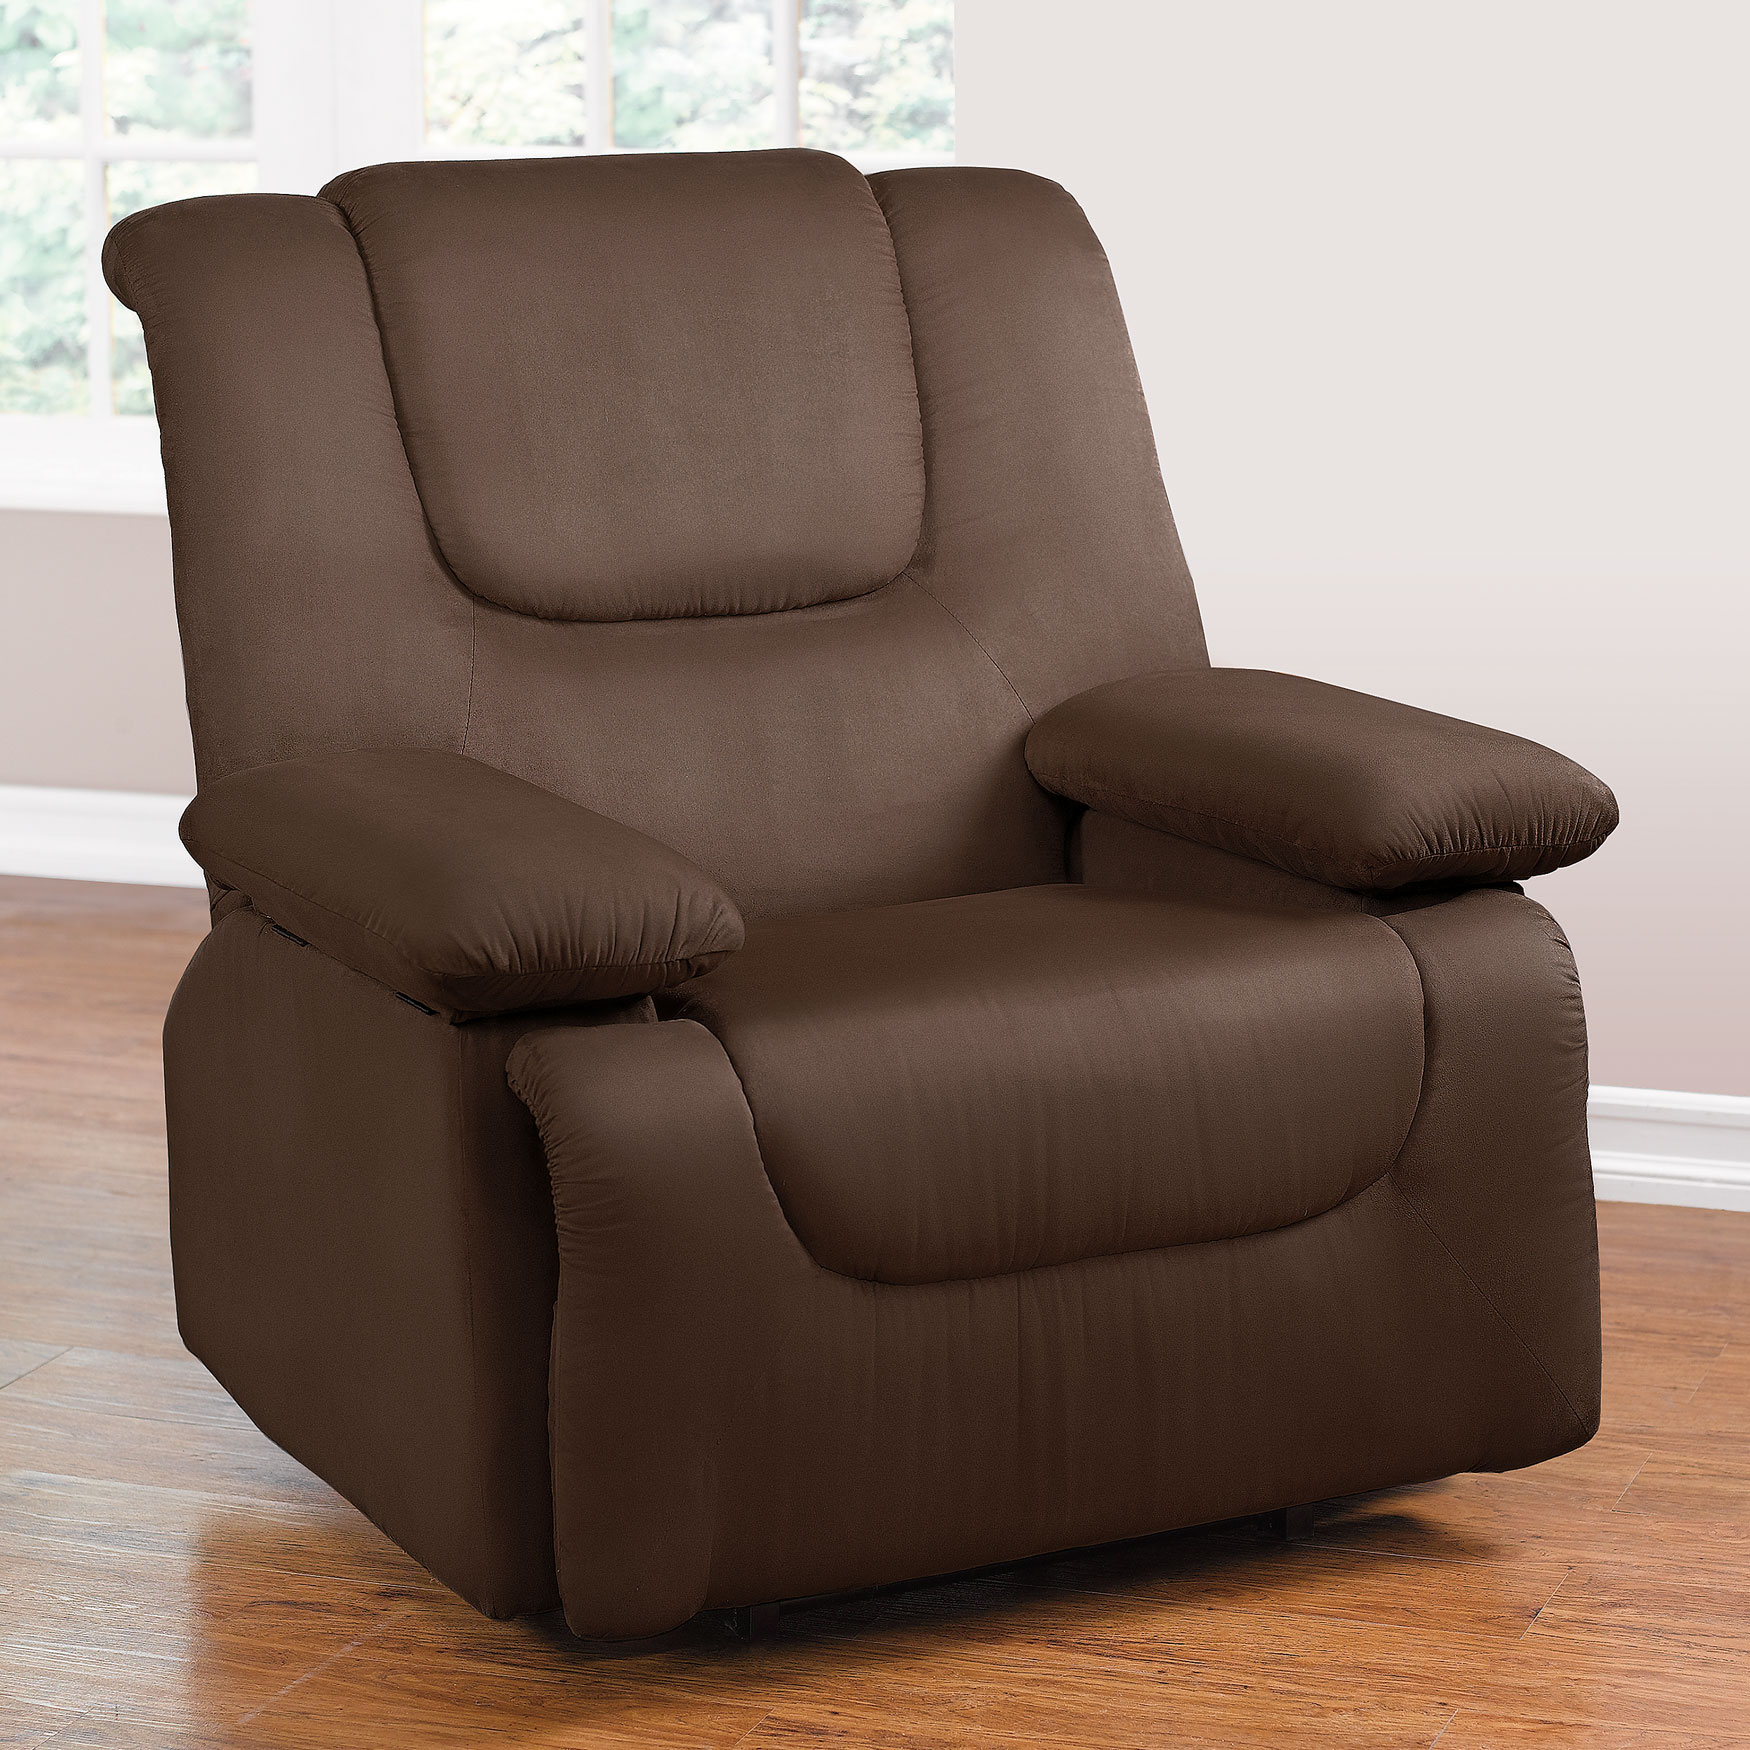 Recliner With Storage Arms Dark Brown